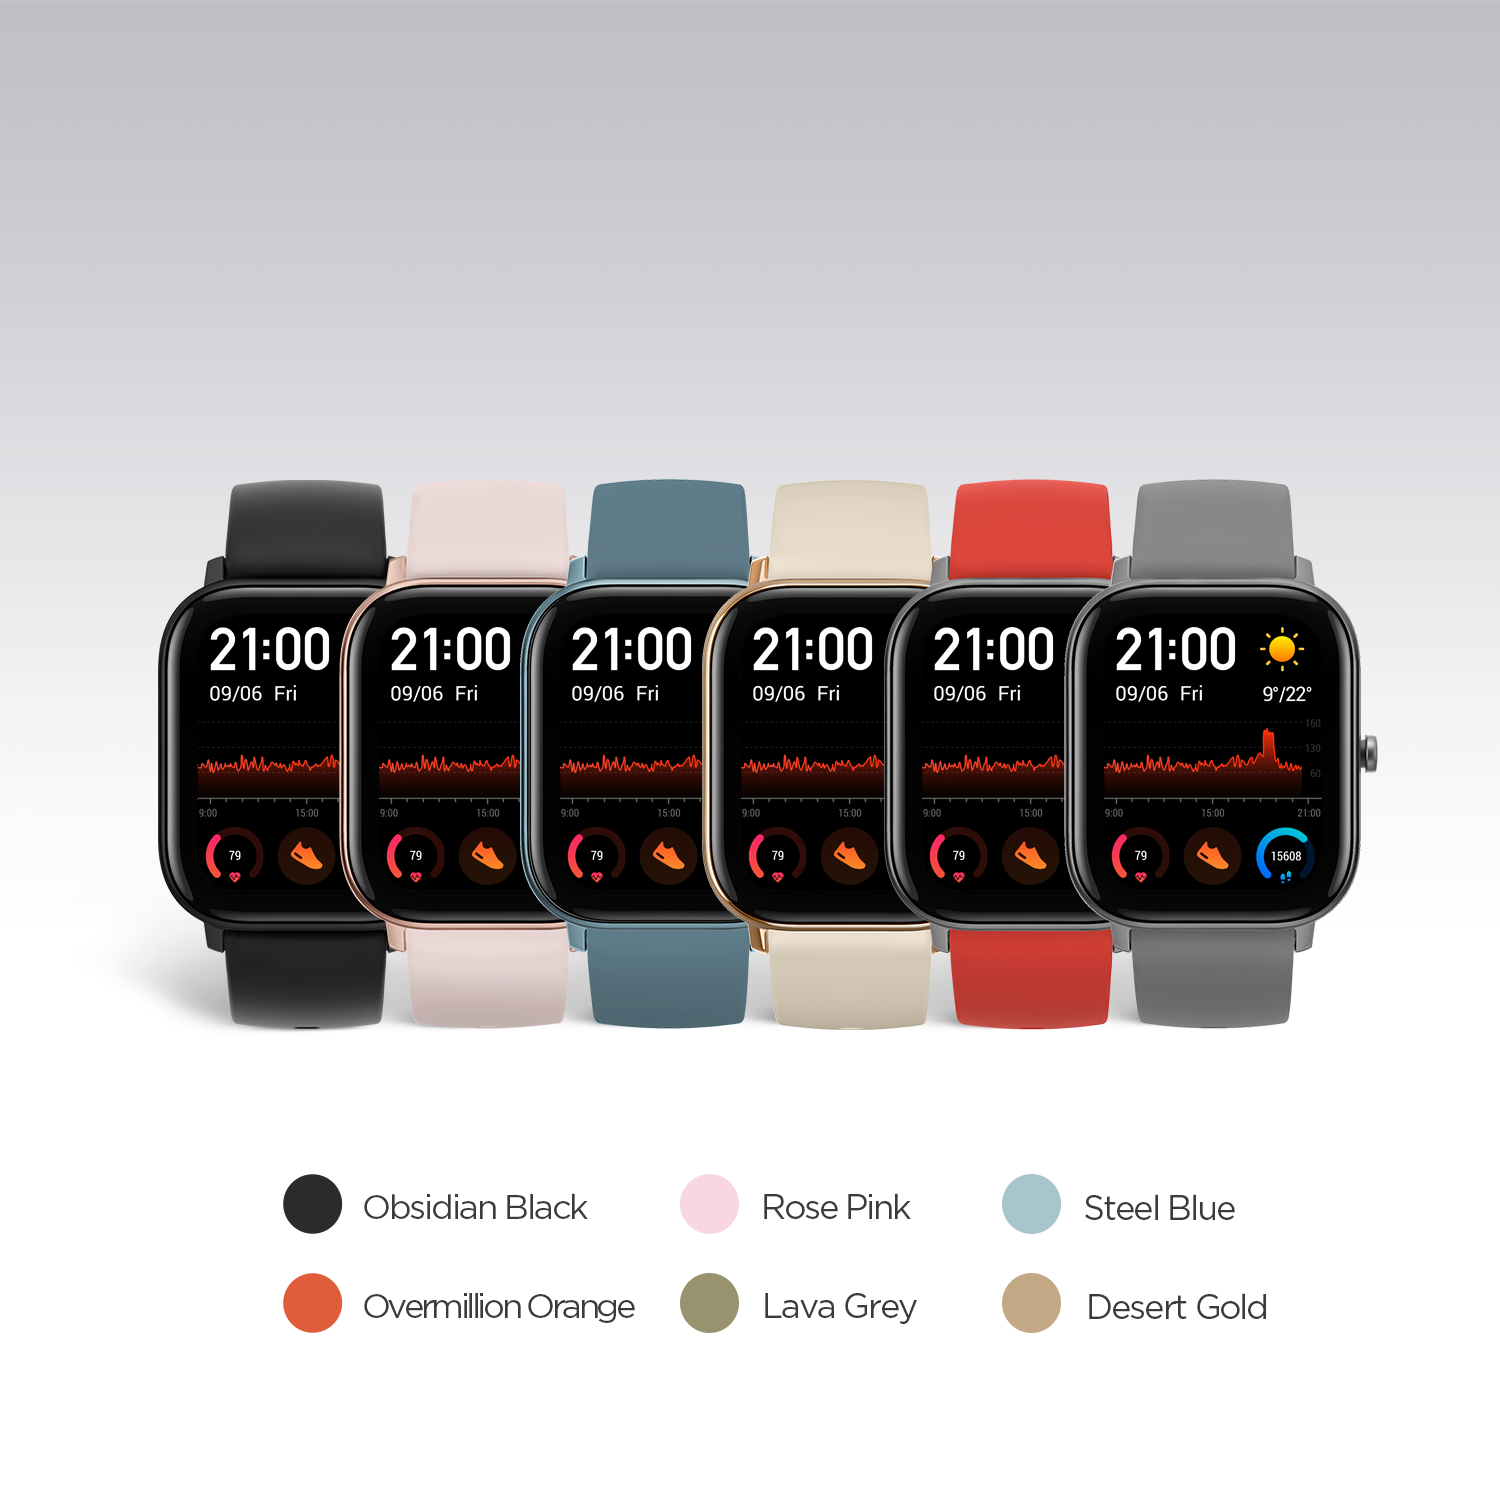 In stock Global Version Amazfit GTS Smart Watch 5ATM in Accra- Ghana 5